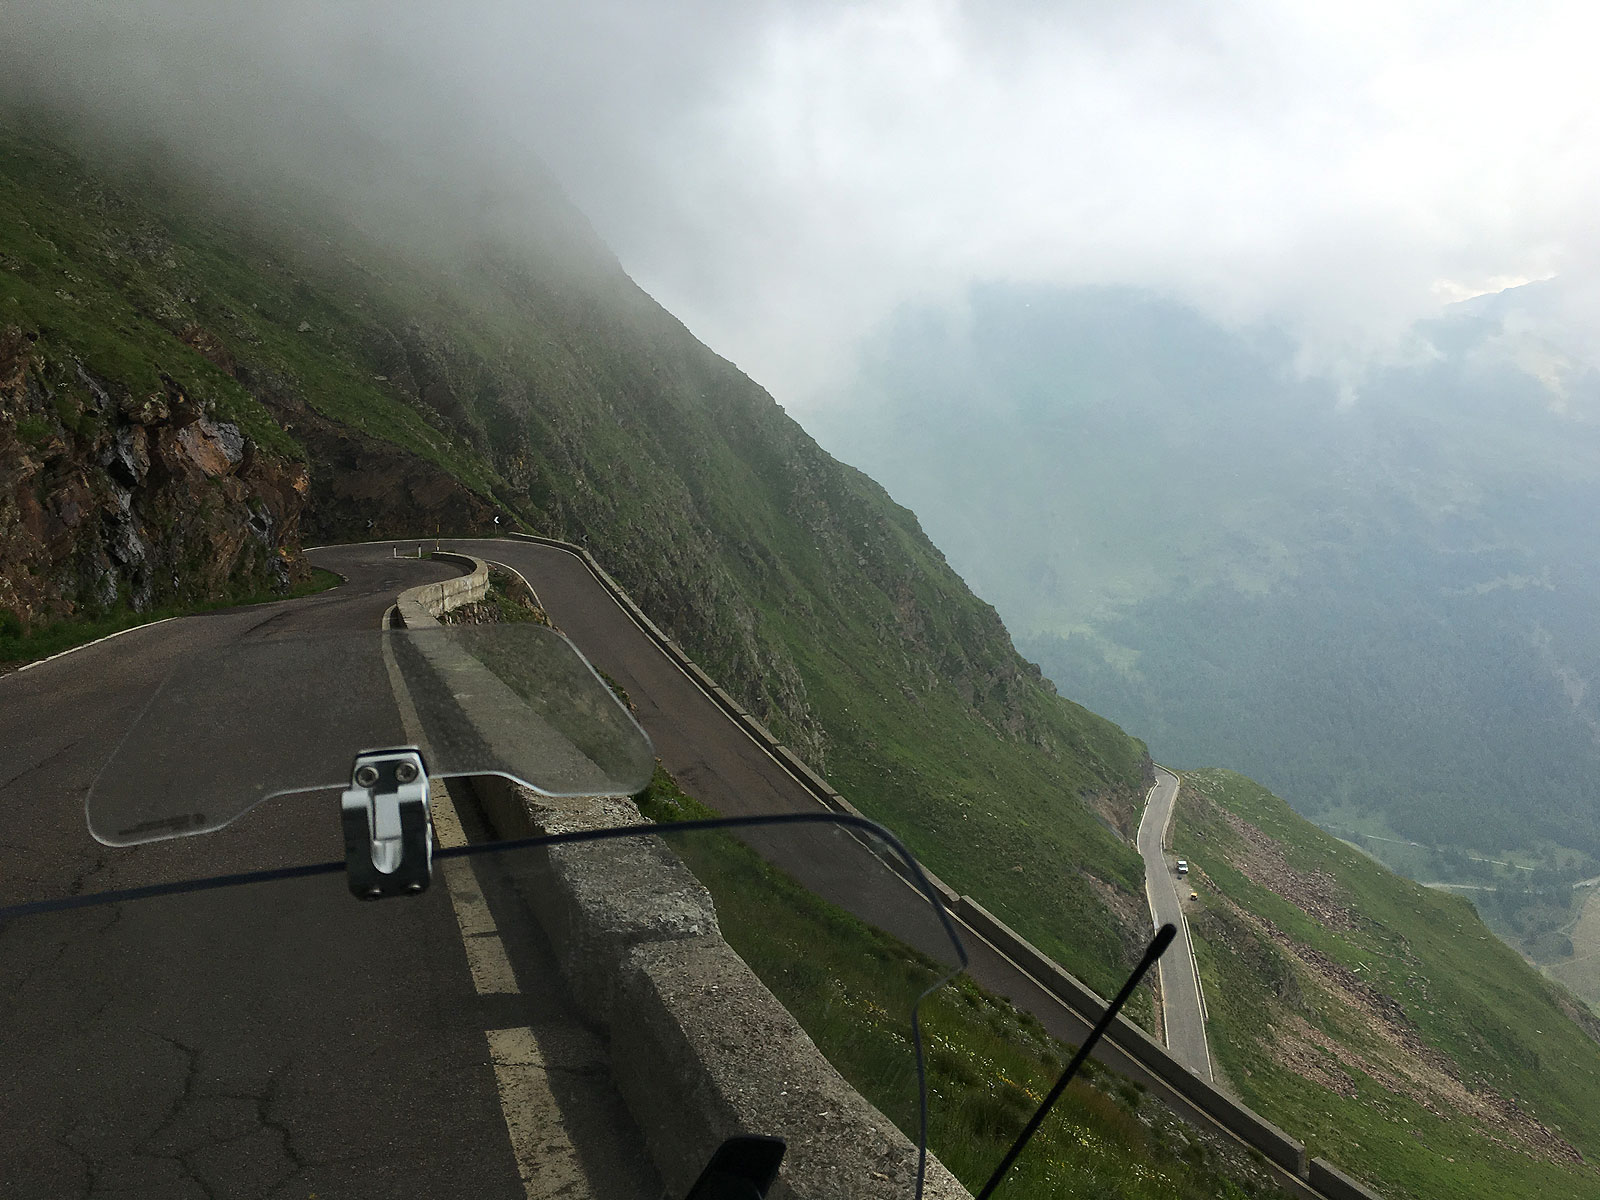 Just crossed the mountain pass Timmelsjoch over to Italy - July 2016